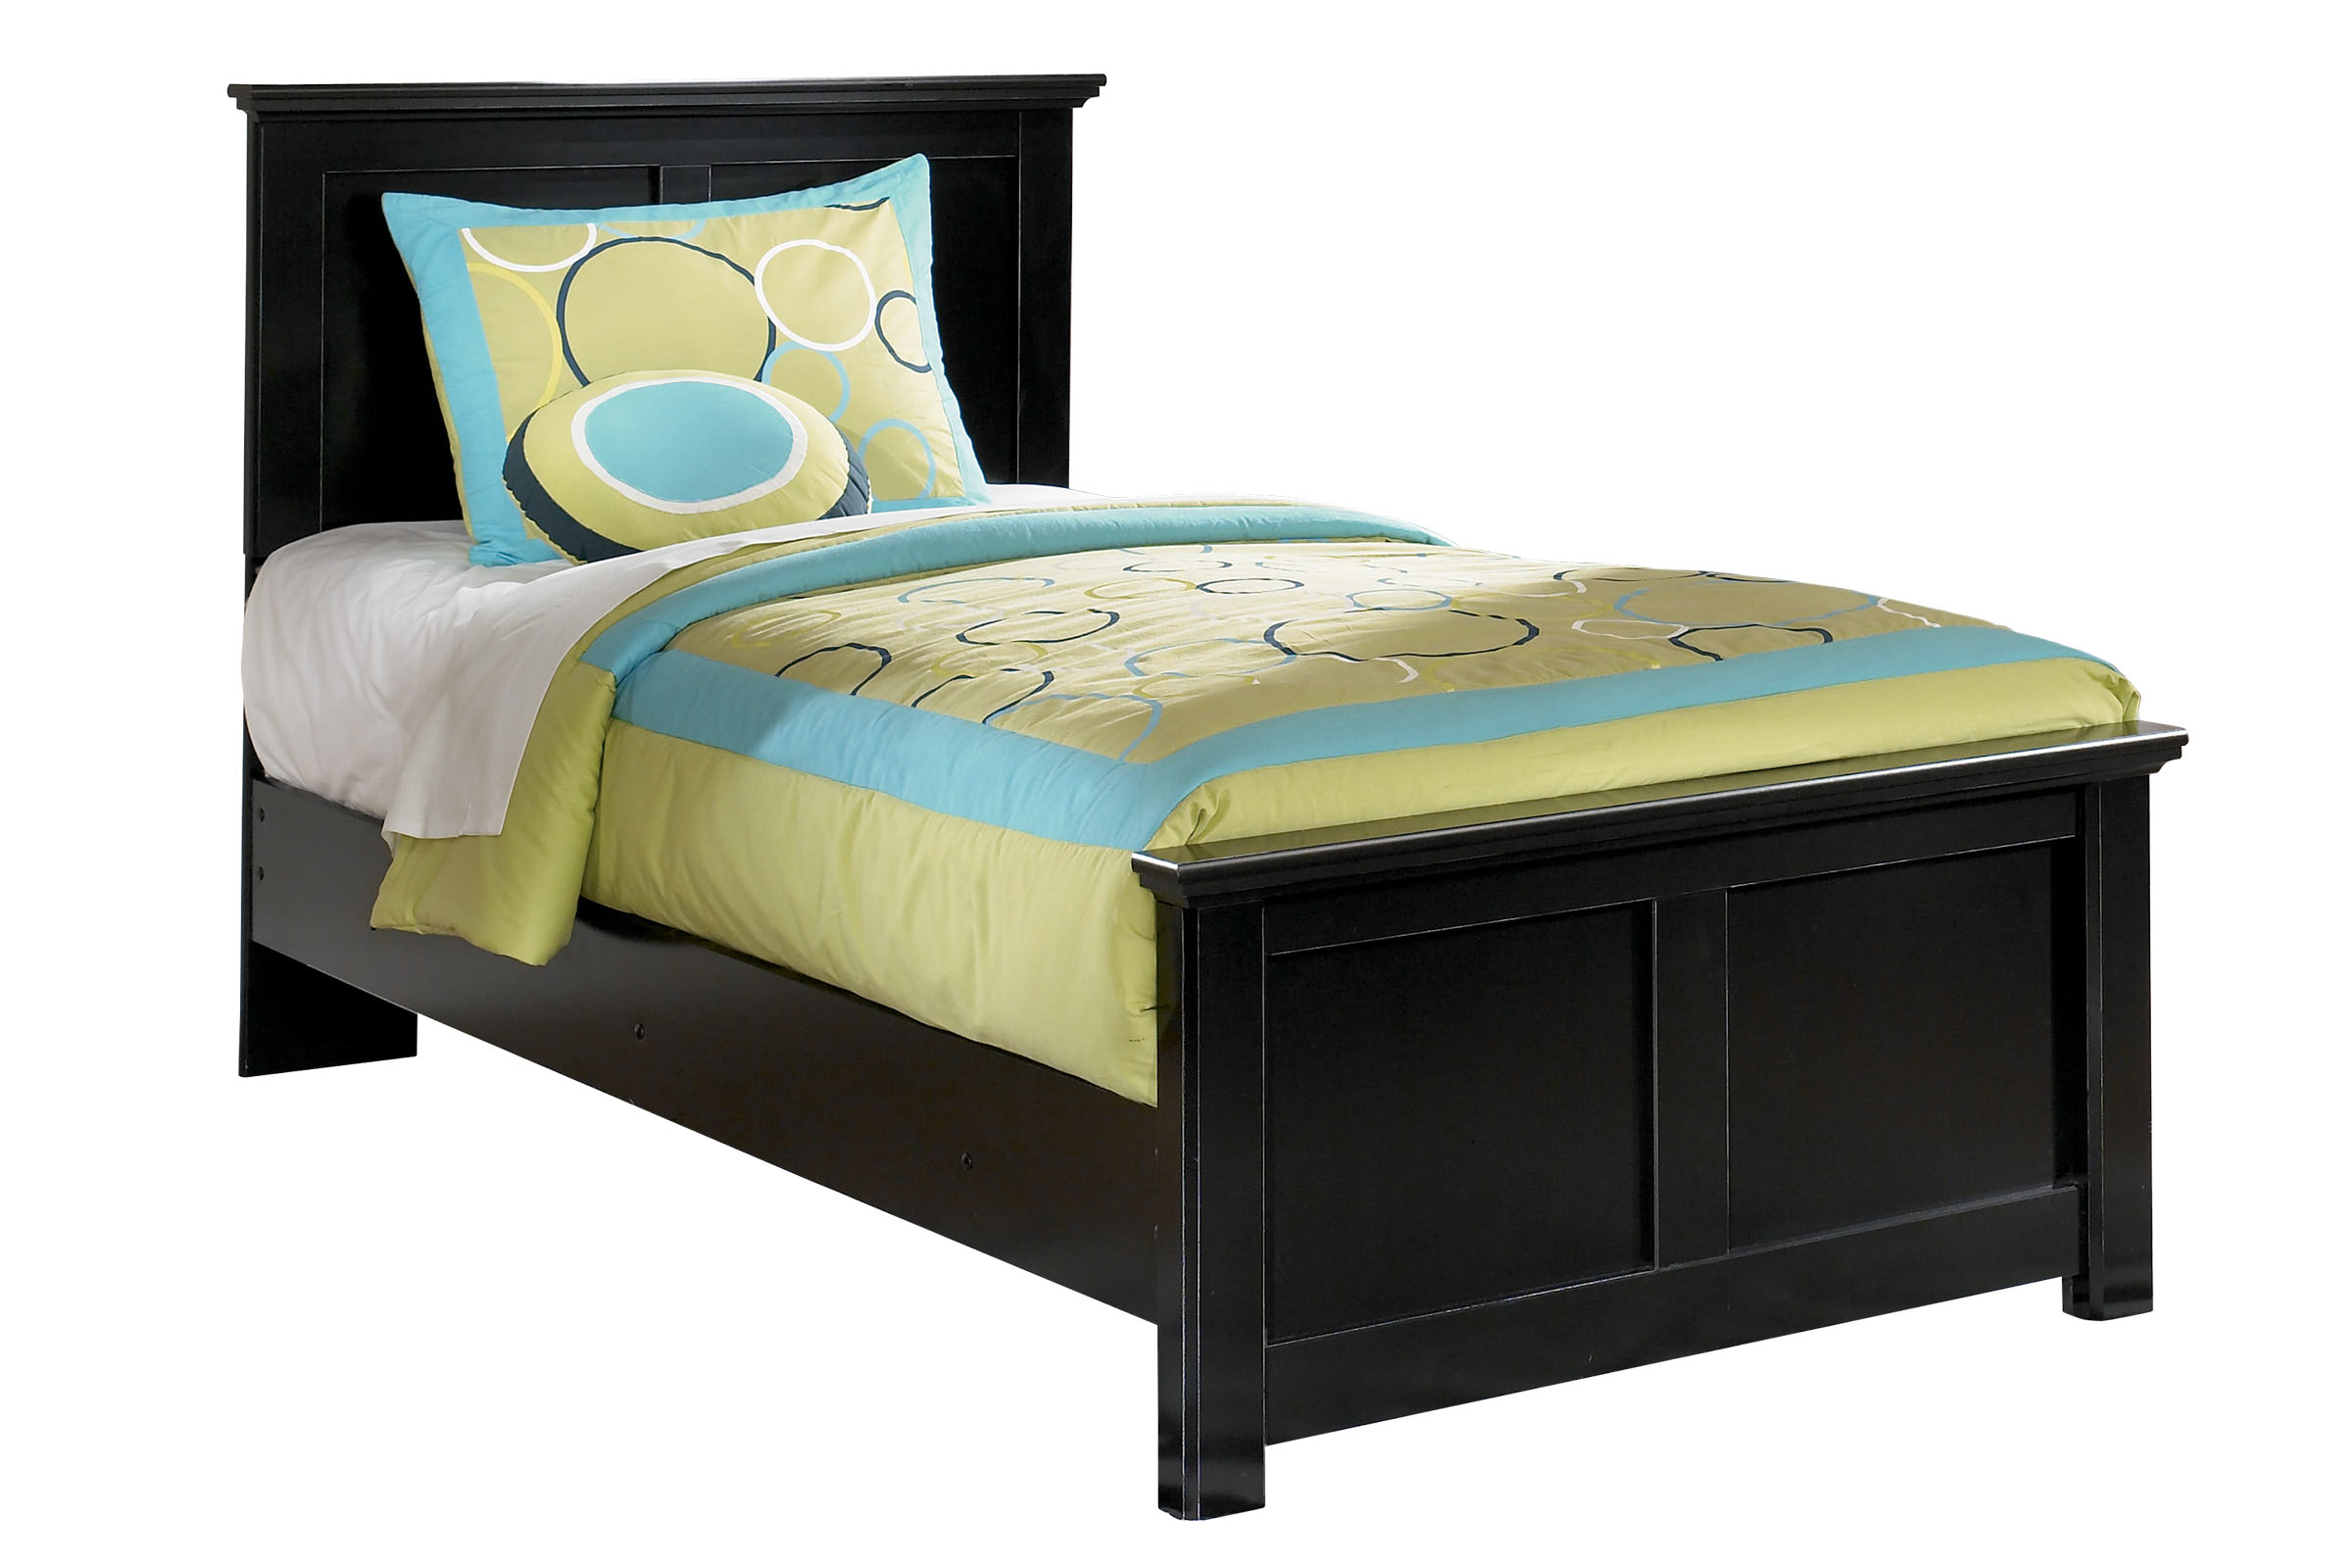 Furniture for Kids Youth Furniture